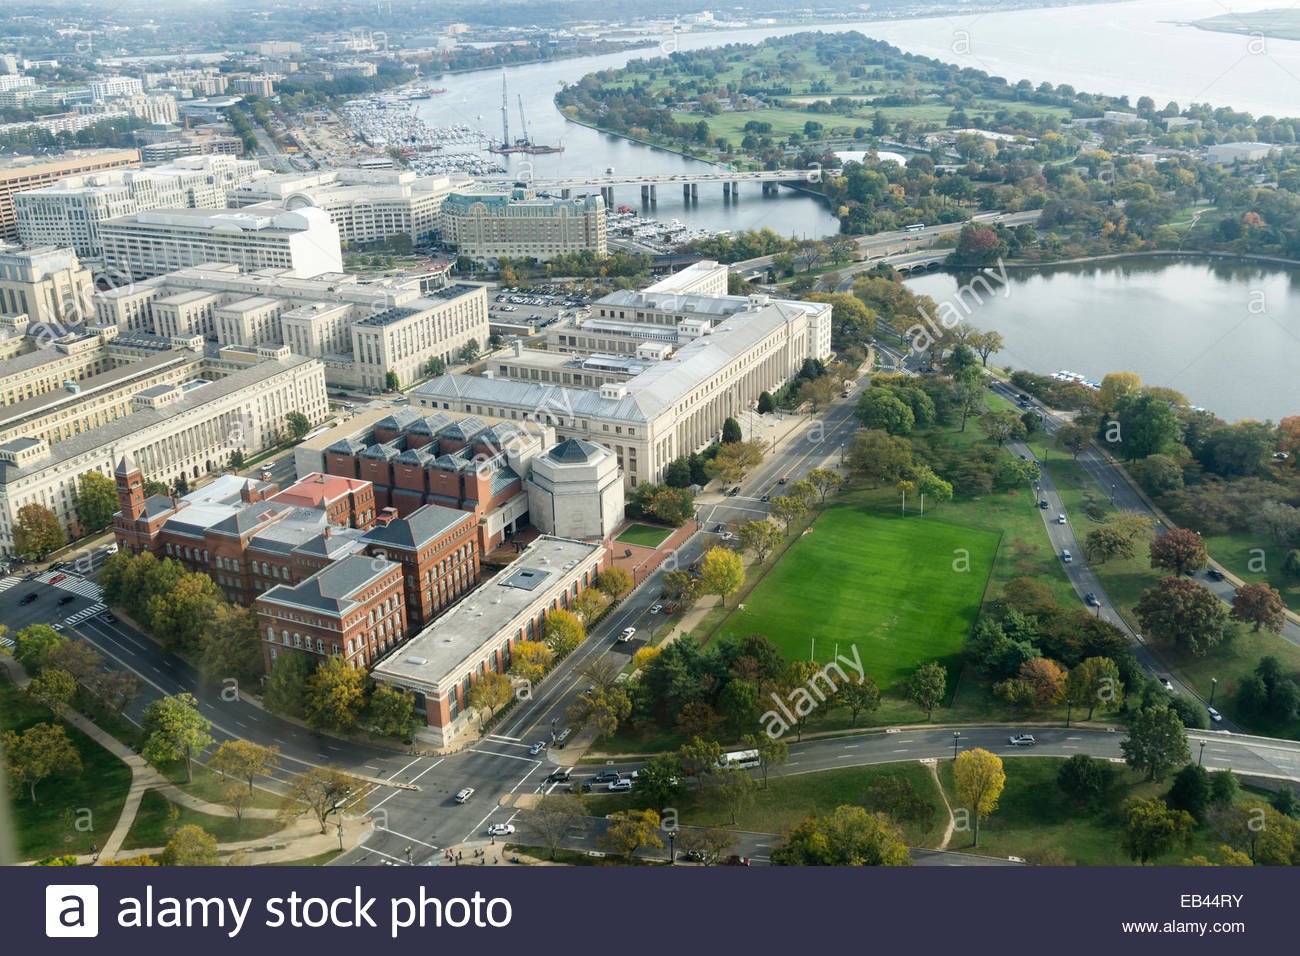 Aerial view of southwest washington dc including the holocaust